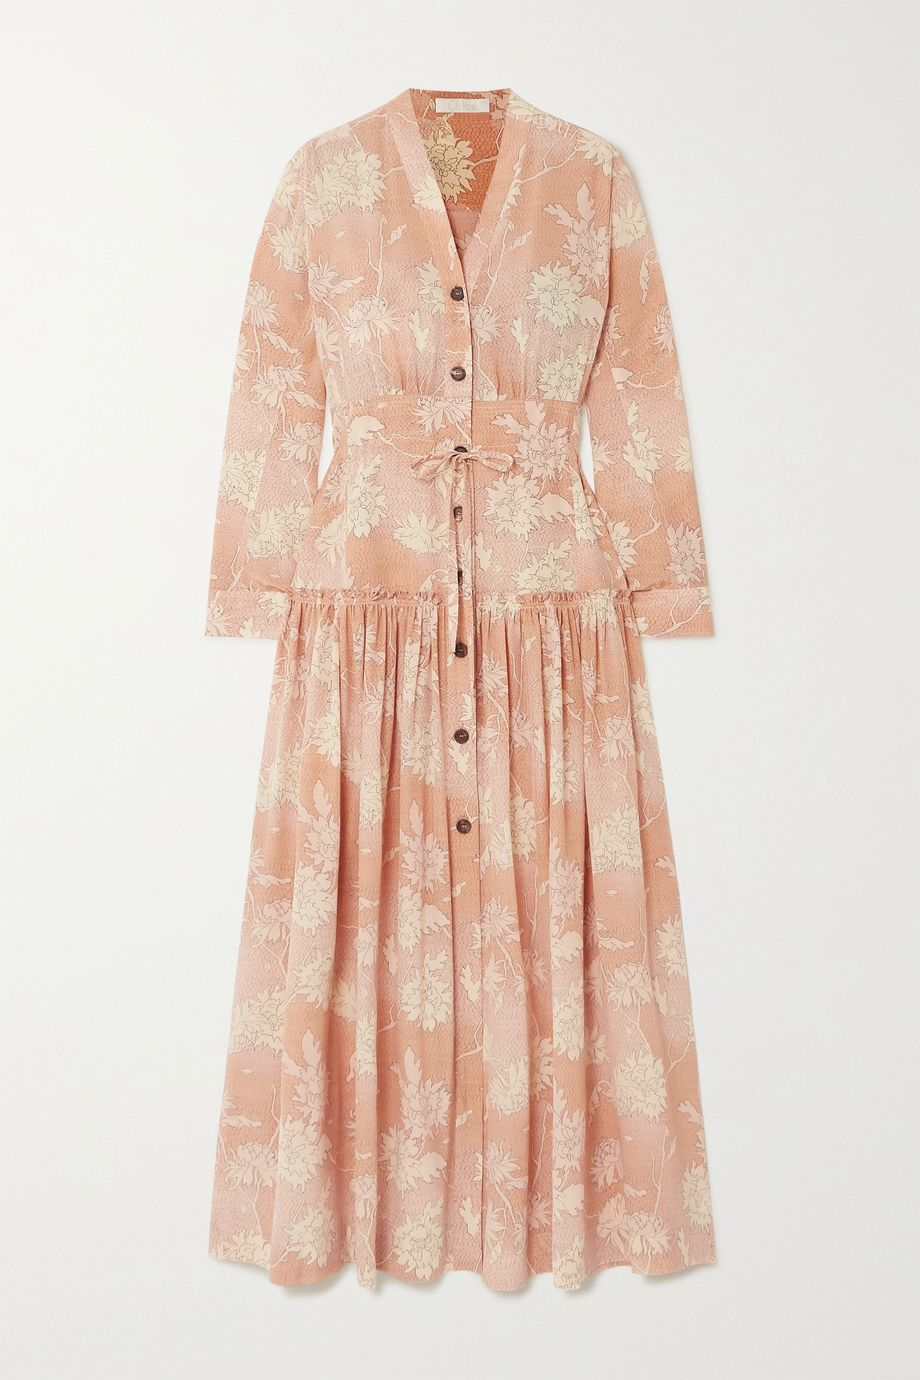 Chloé Floral-print silk crepe de chine maxi dress